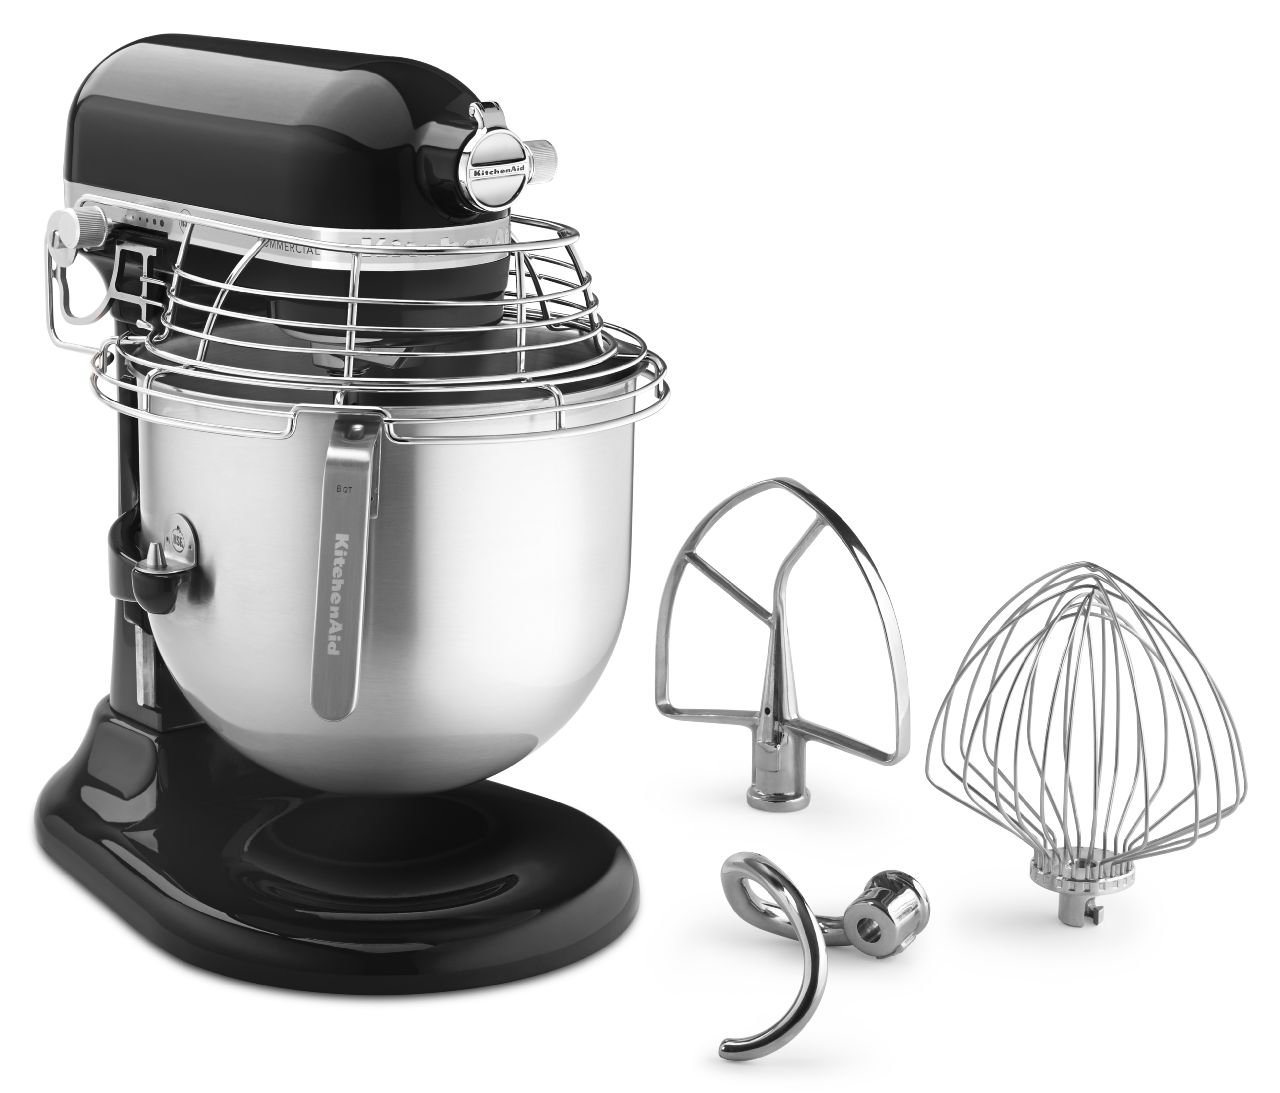 KitchenAid 8QT Stand Mixer - Side View